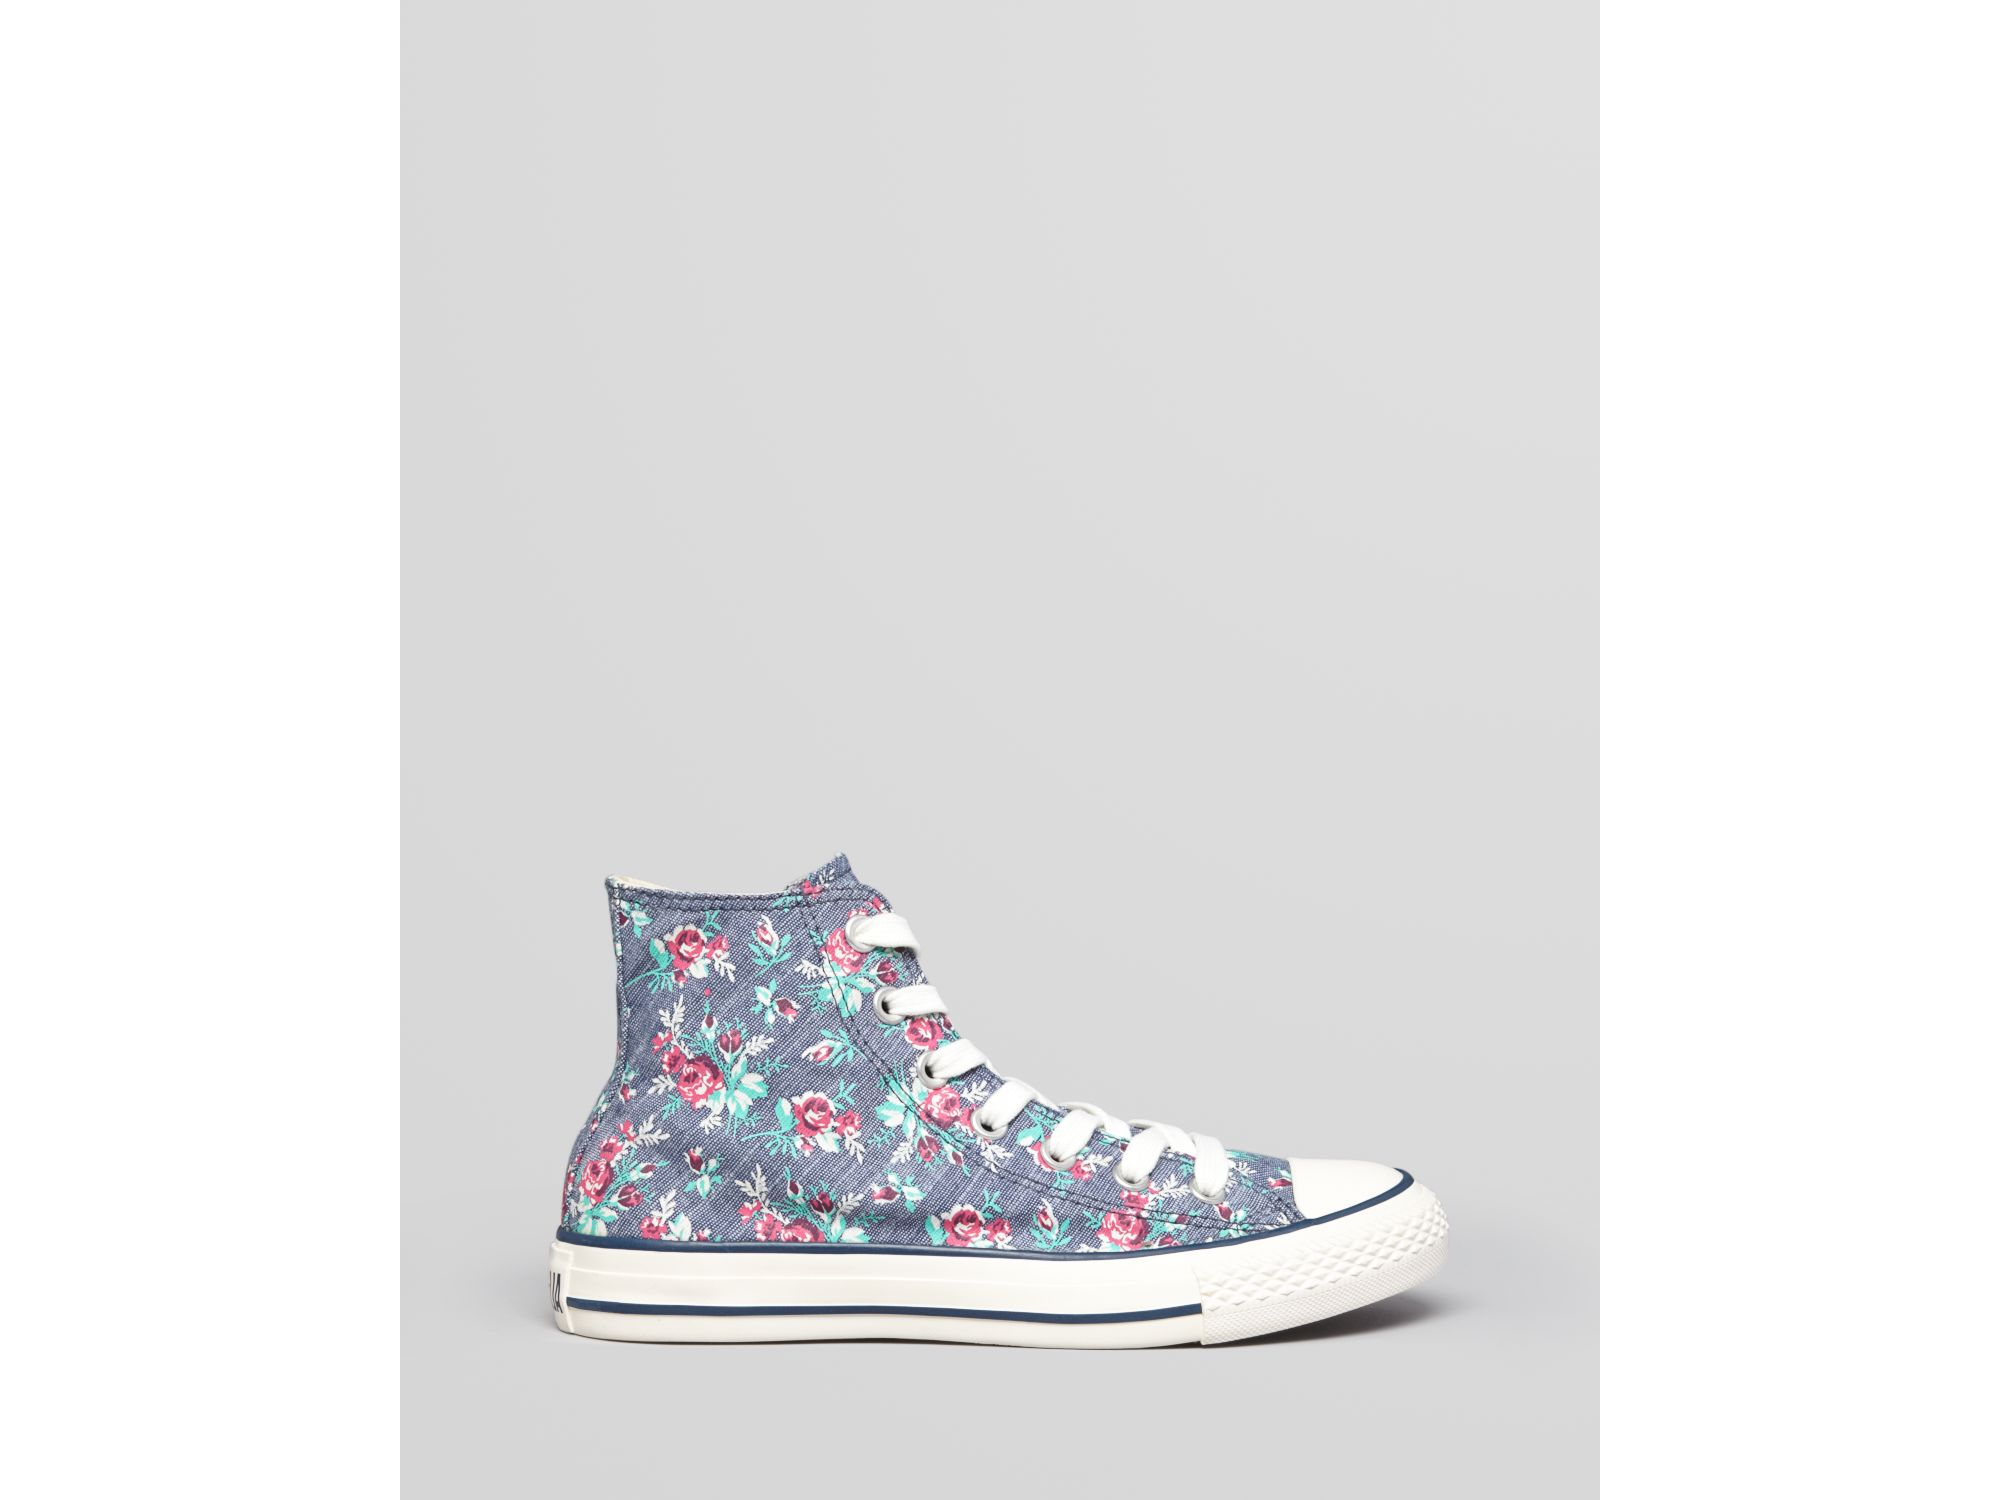 72c86324234608 Lyst - Converse Lace Up High Top Sneakers All Star Floral Print in White